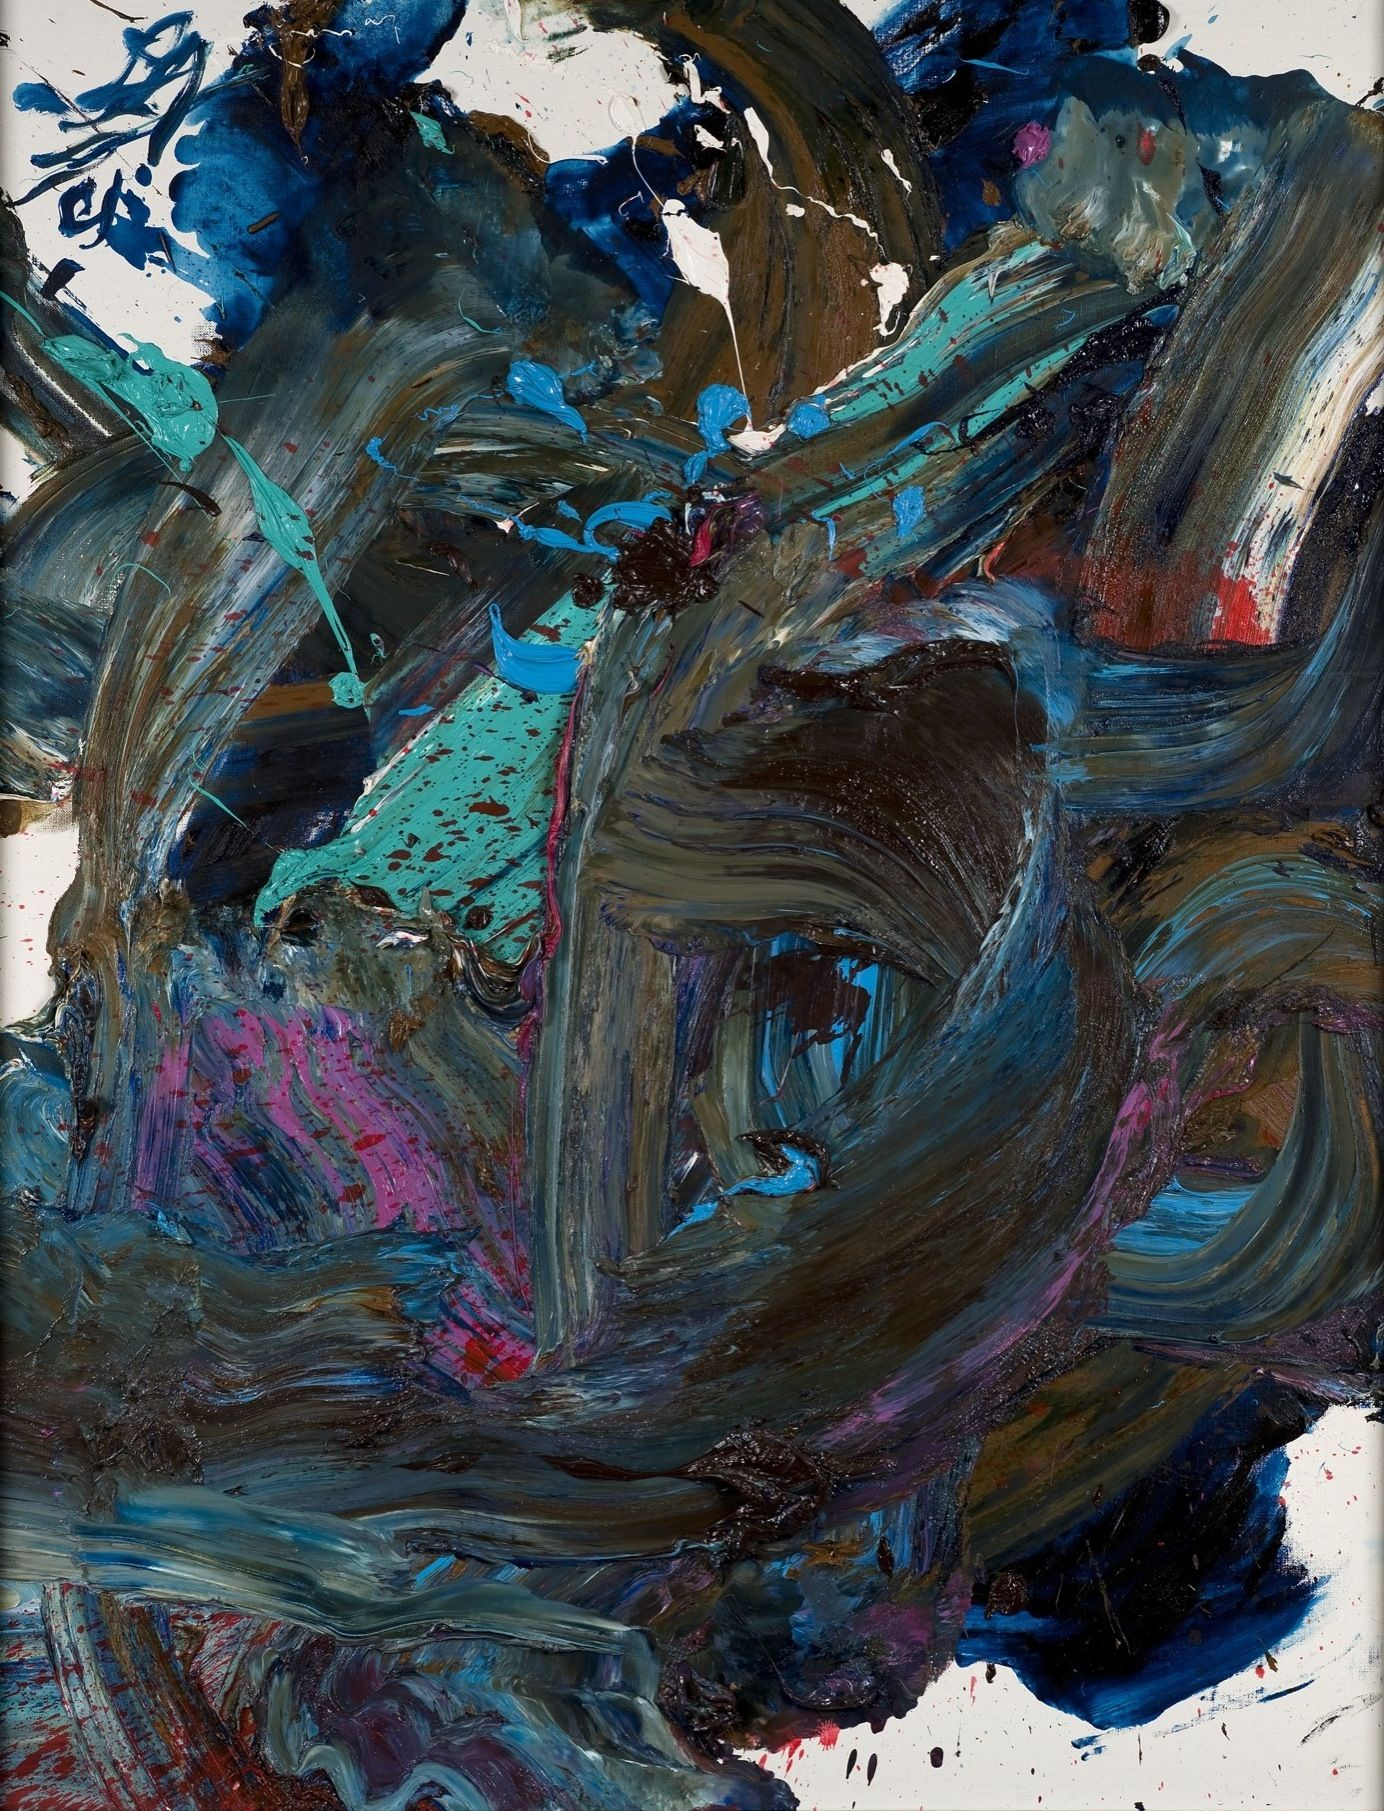 Kazuo Shiraga Kazuo Shiragas oil paintings were created by dripping paint onto a